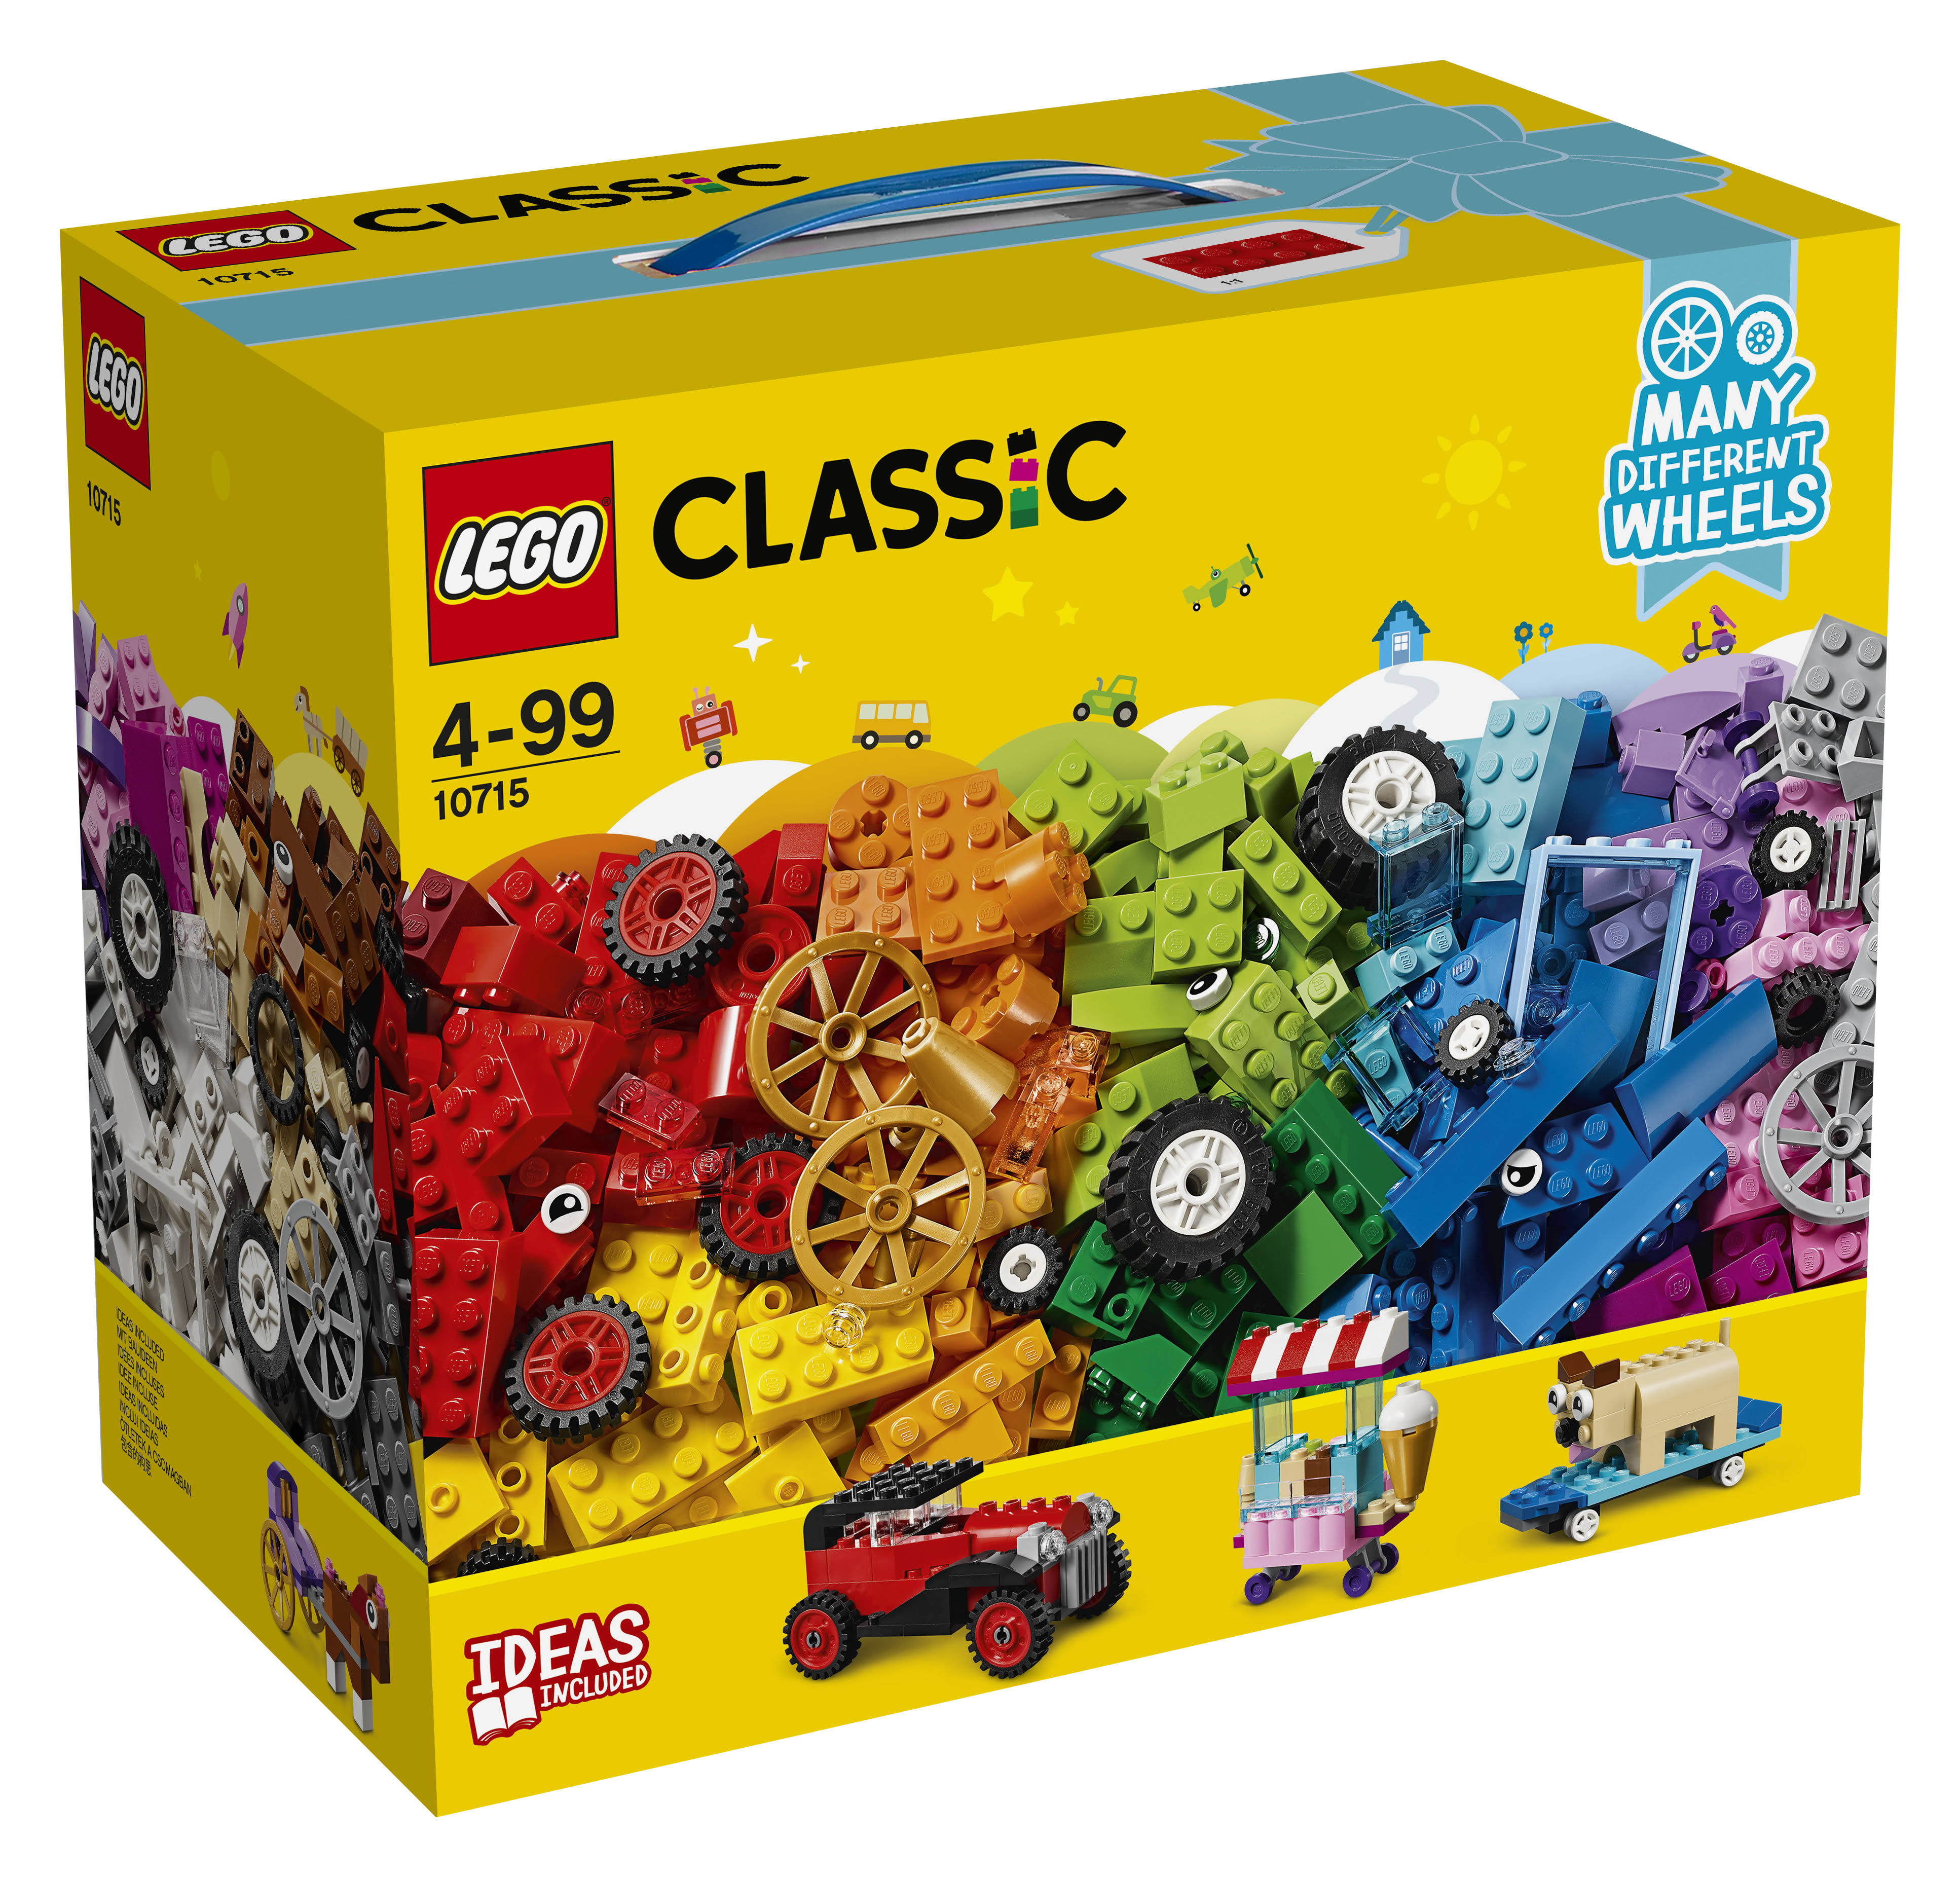 Lego 10715 Classic Toy Puzzle - Bricks on a Roll